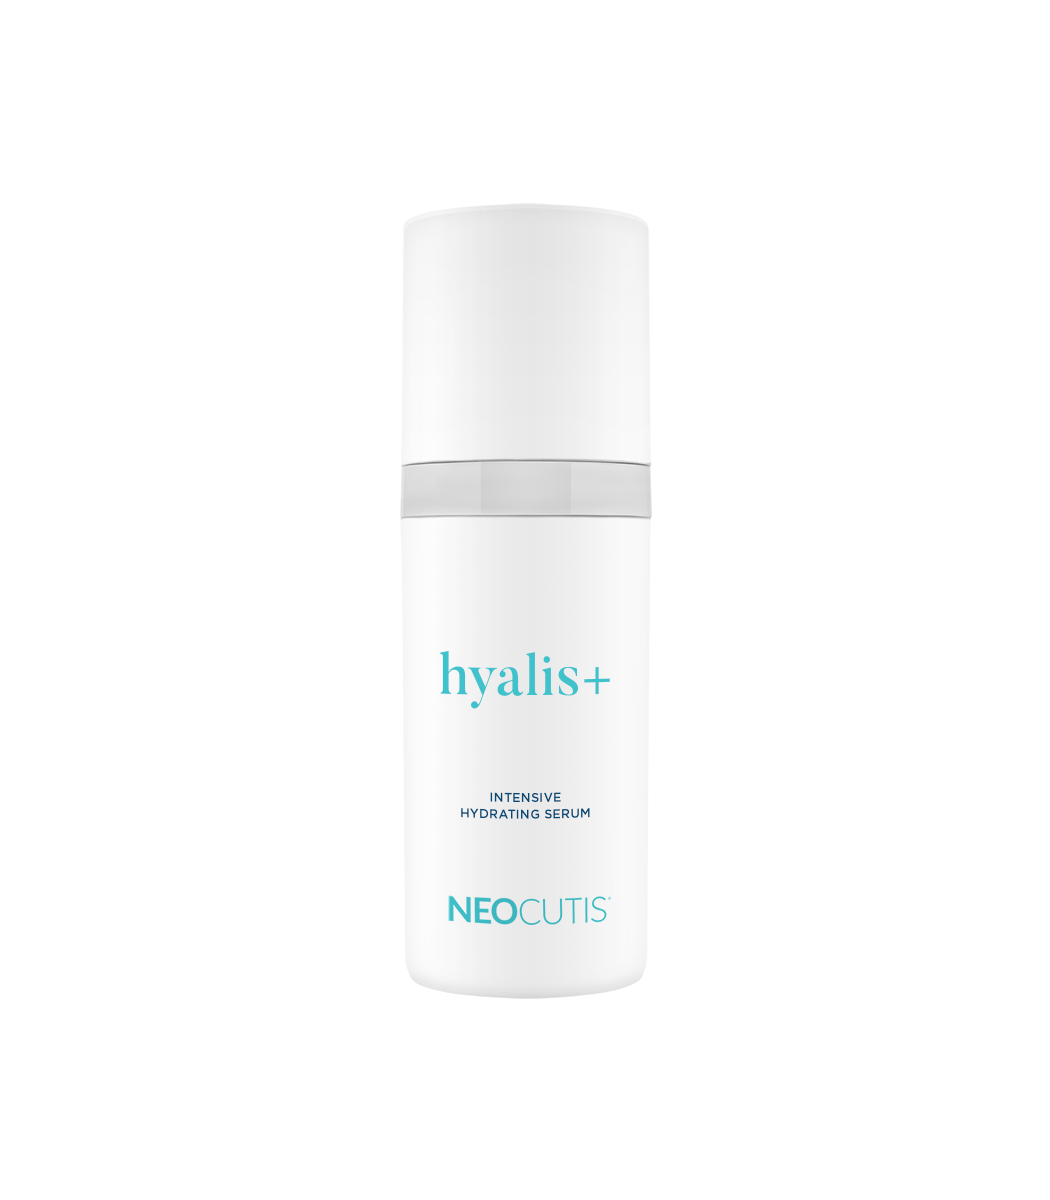 NEOCUTIS Hyalis+ | Intensive Hydrating Serum | 1 Oz | 4 Month Supply | Minimizes appearance of fine lines & wrinkles | Helps increase the level of natural hyaluronic acid in the skin | Dermatologist tested - New and Improved